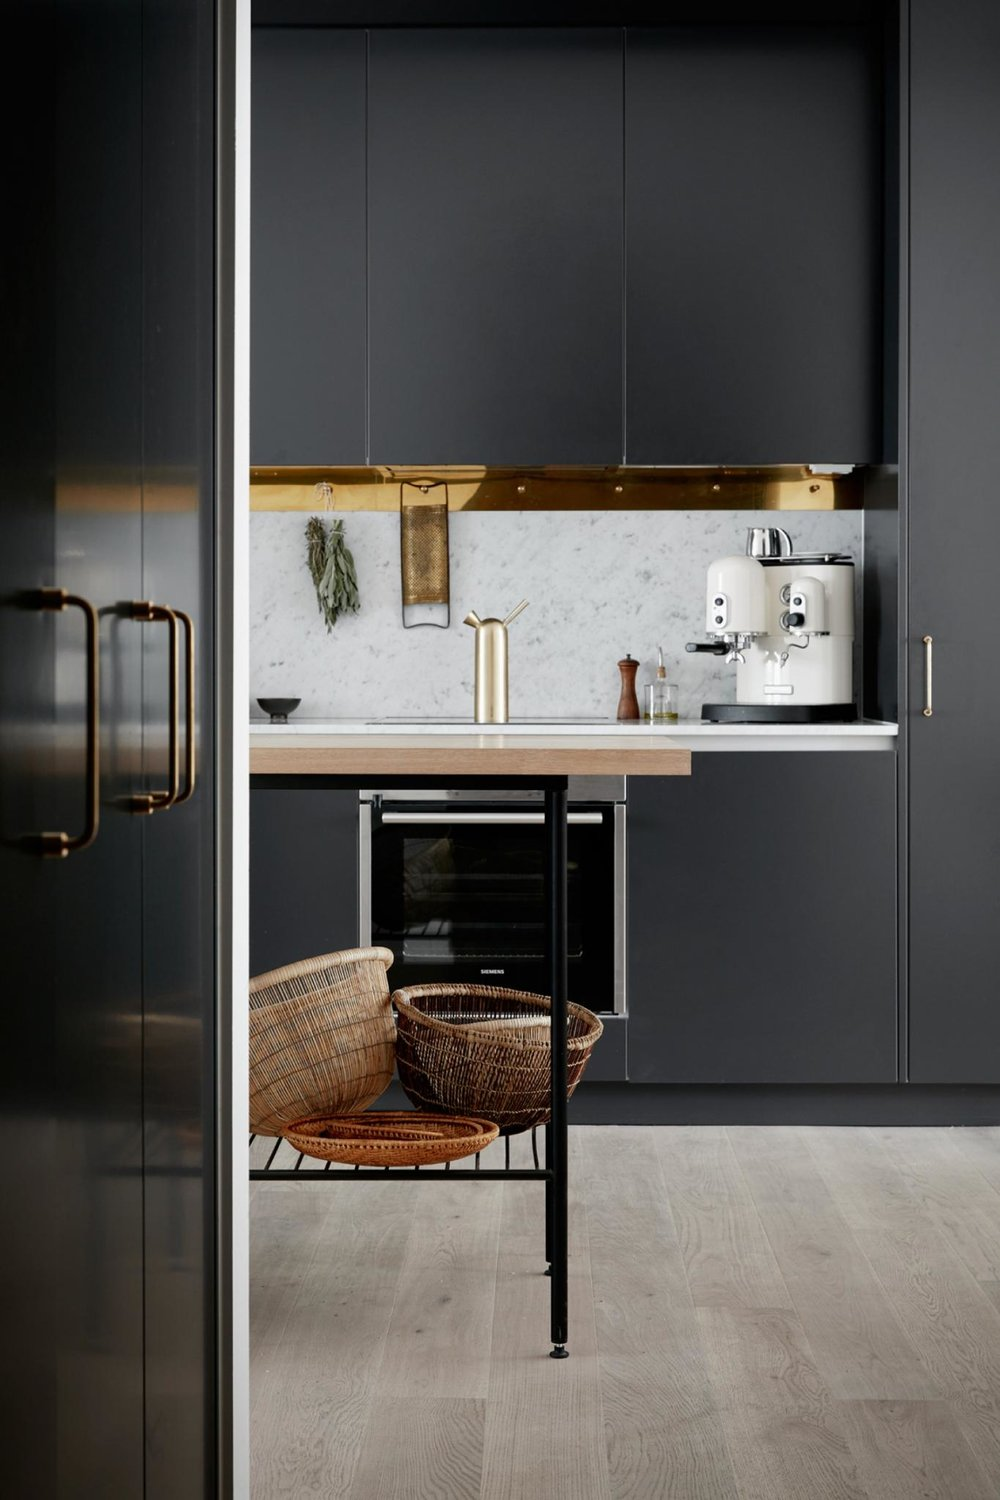 Simple brass detailing like this can easily and retrospectively be added to your kitchen for an instant designer update.